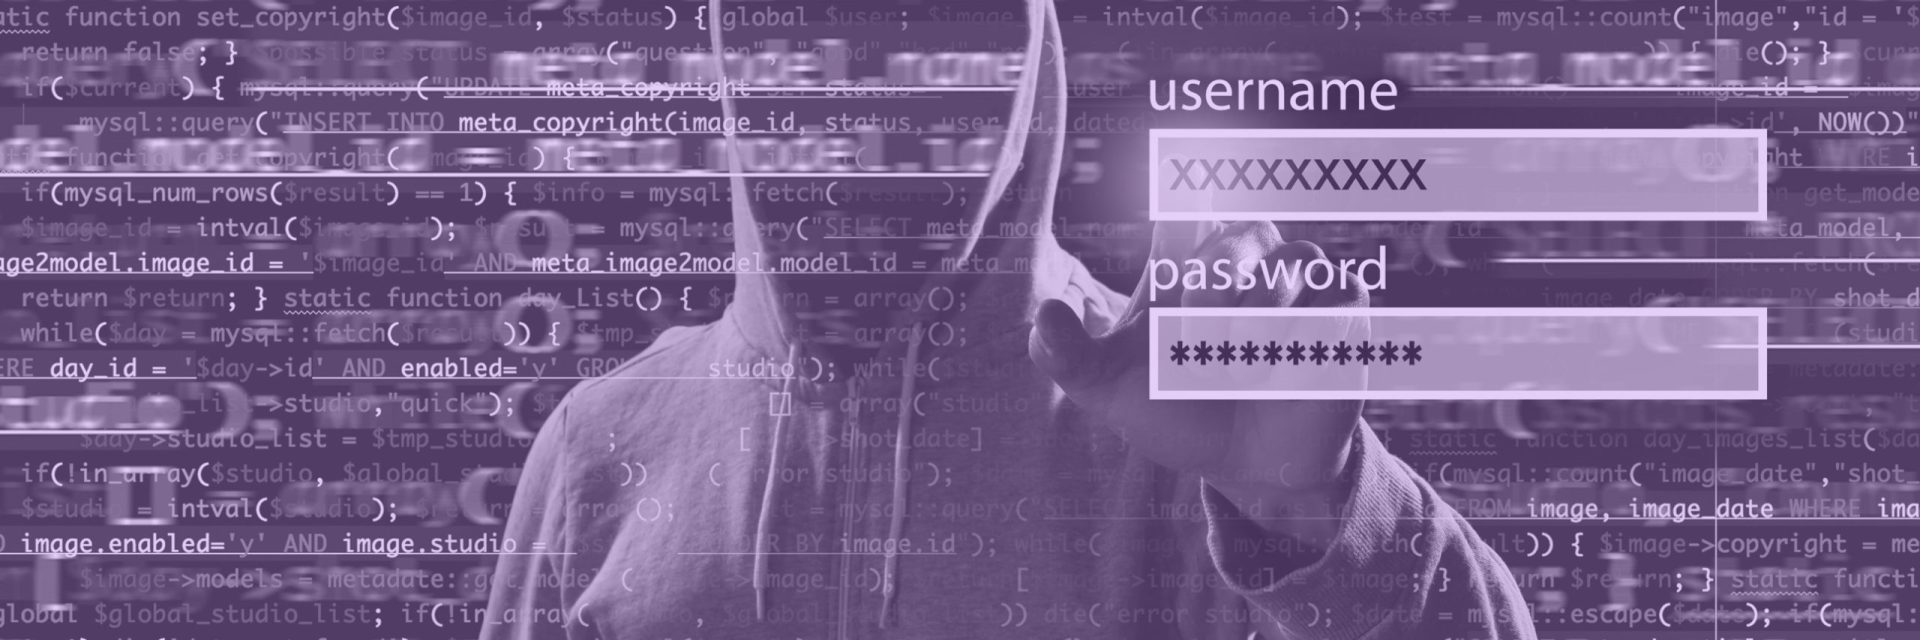 How To Lower The Risks Of Privileged Users Compromise